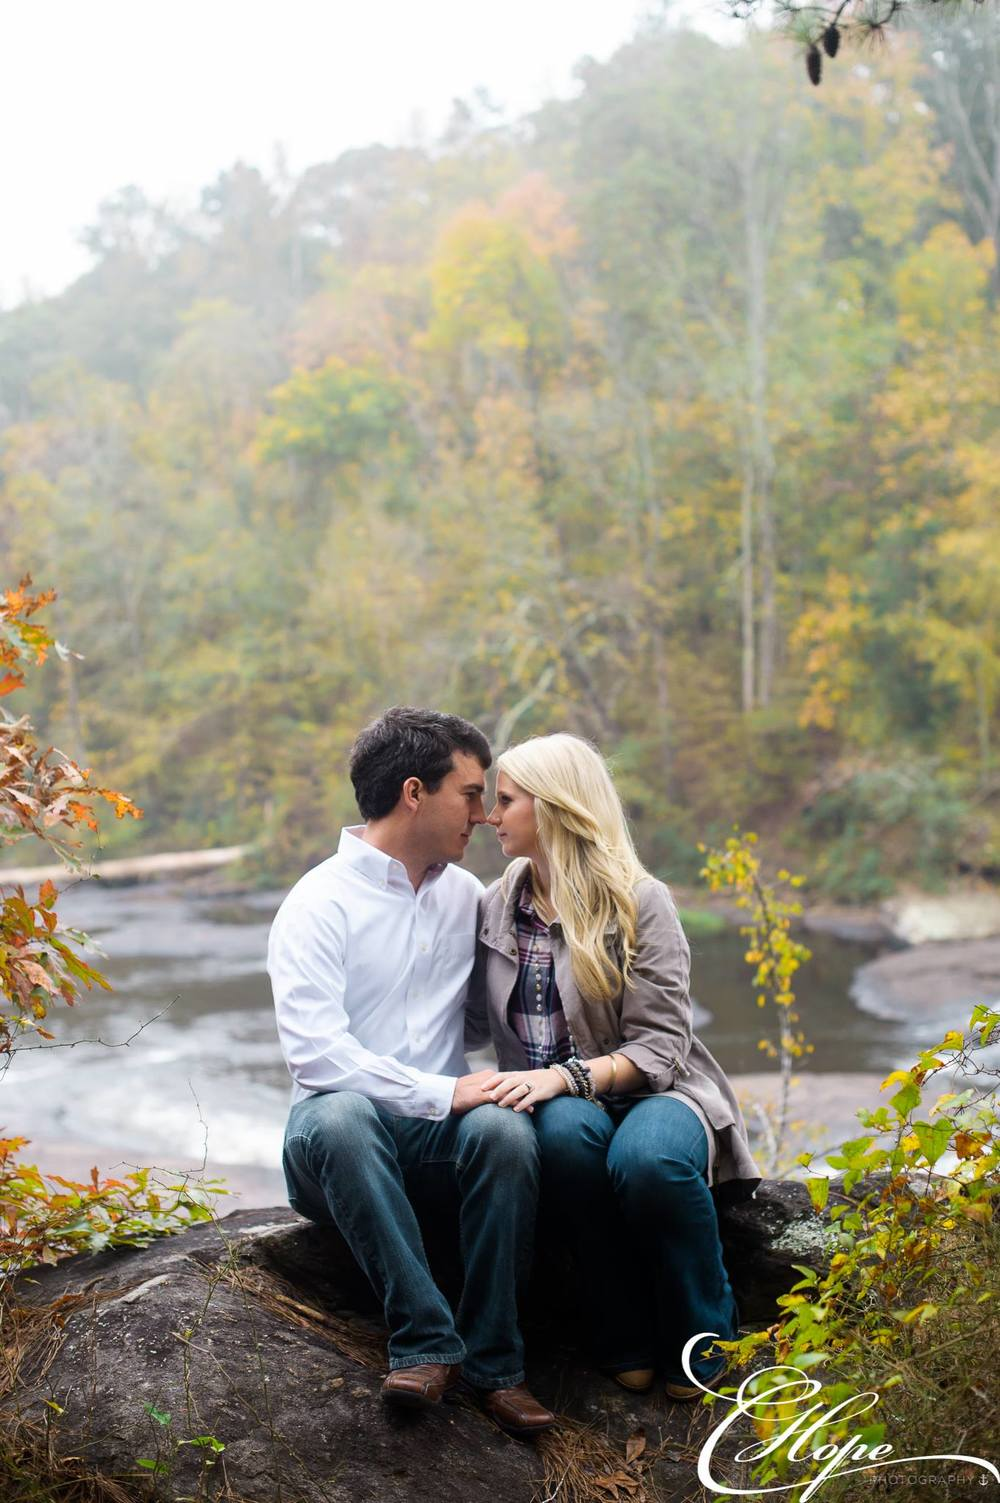 Phil and Jes' cozy engagment session in Georgia by C Hope Photography